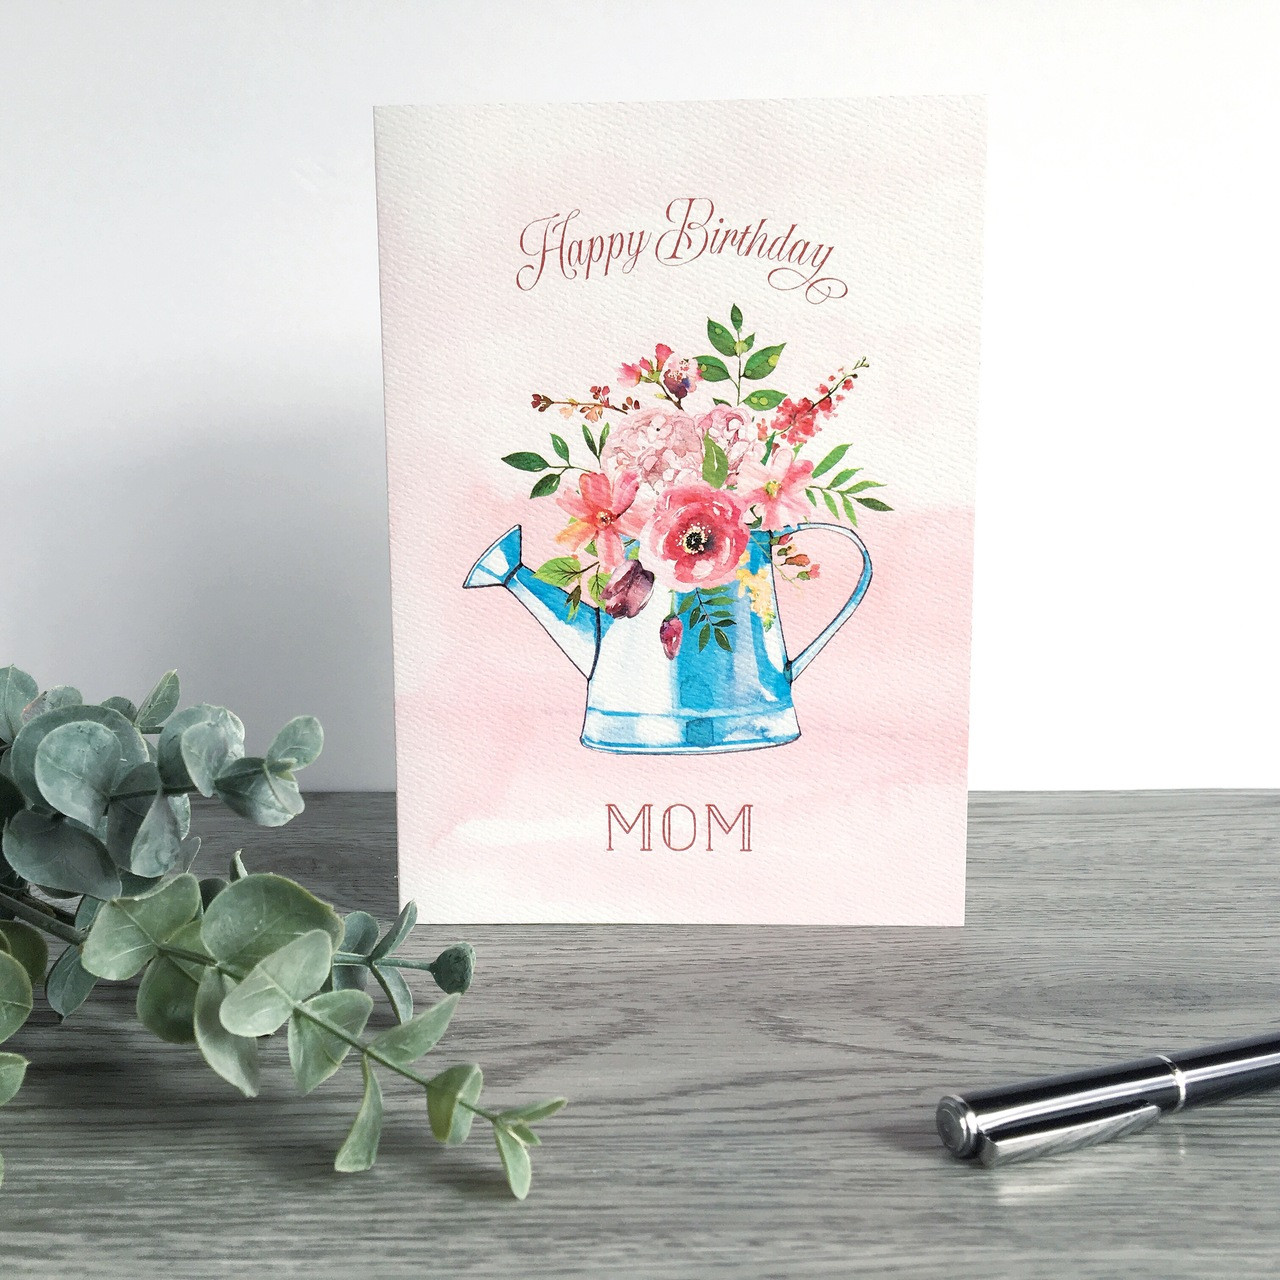 Superb Watercolor Flower Bouquet Mom Birthday Card Especially Yours Designs Personalised Birthday Cards Veneteletsinfo